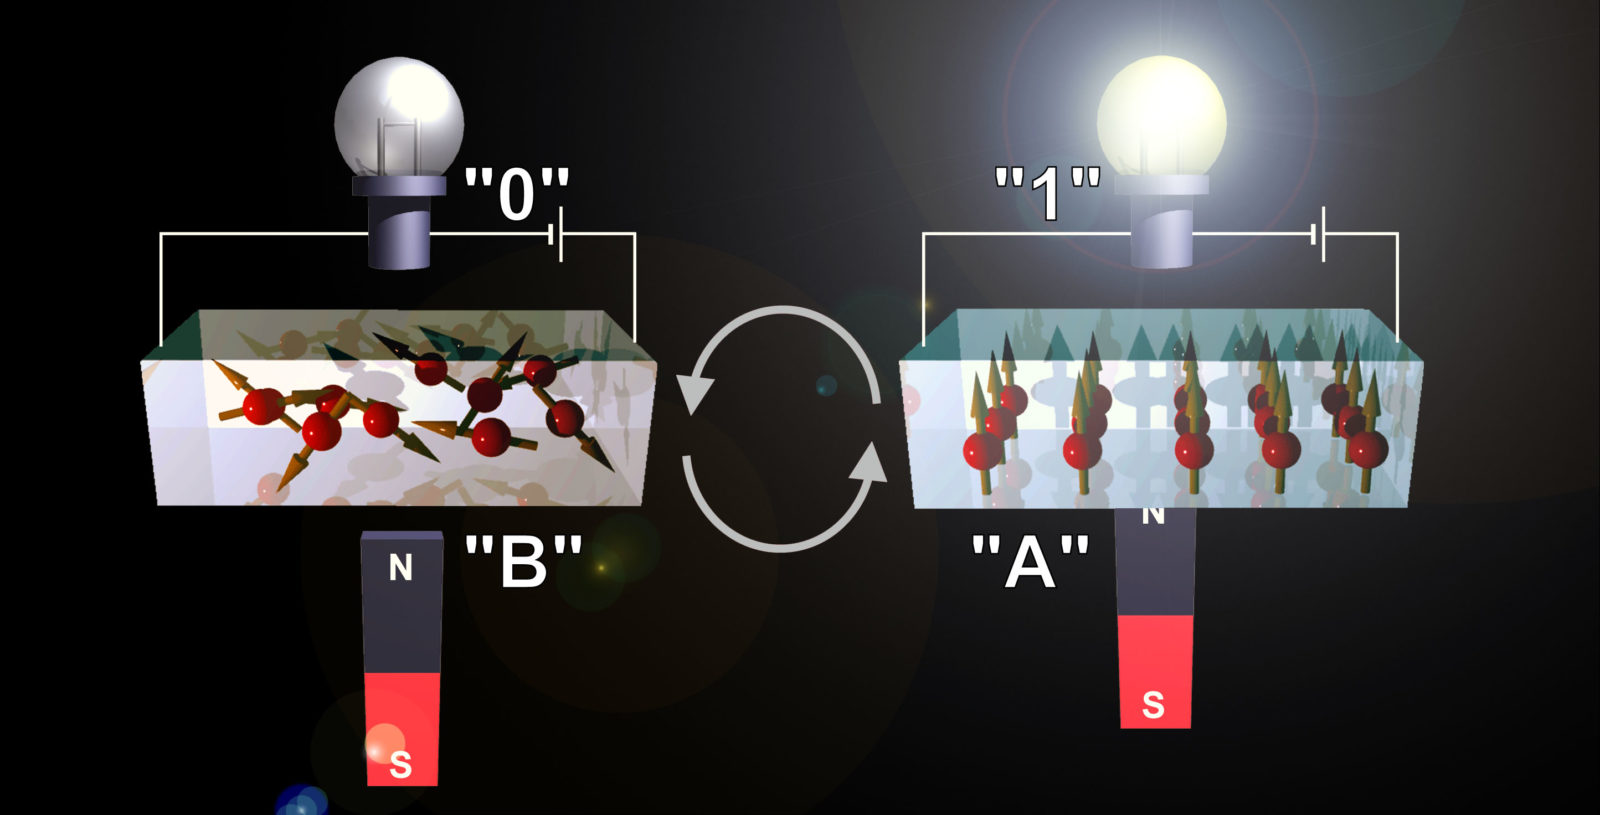 Using two forms of strontium cobalt oxide with different oxygen content, the device can be switched from an insulating/non-magnet state to a metallic/magnet state simultaneously by electrochemical oxidation/reduction reaction at room temperature in air.